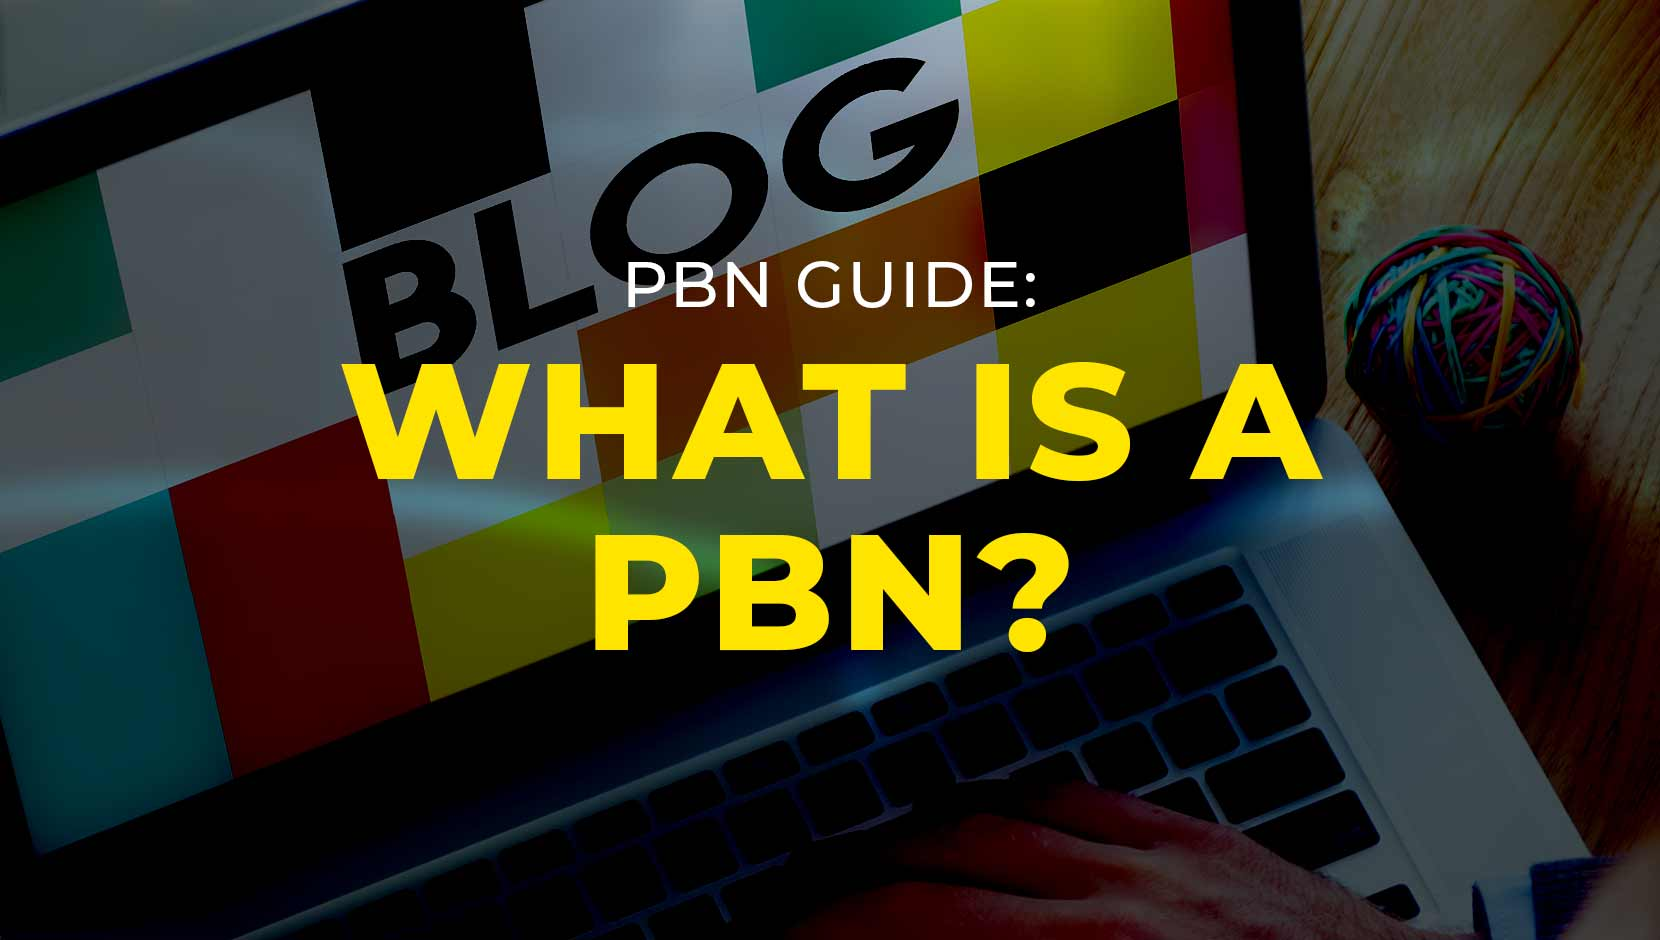 A Beginners Guide: What is a PBN?